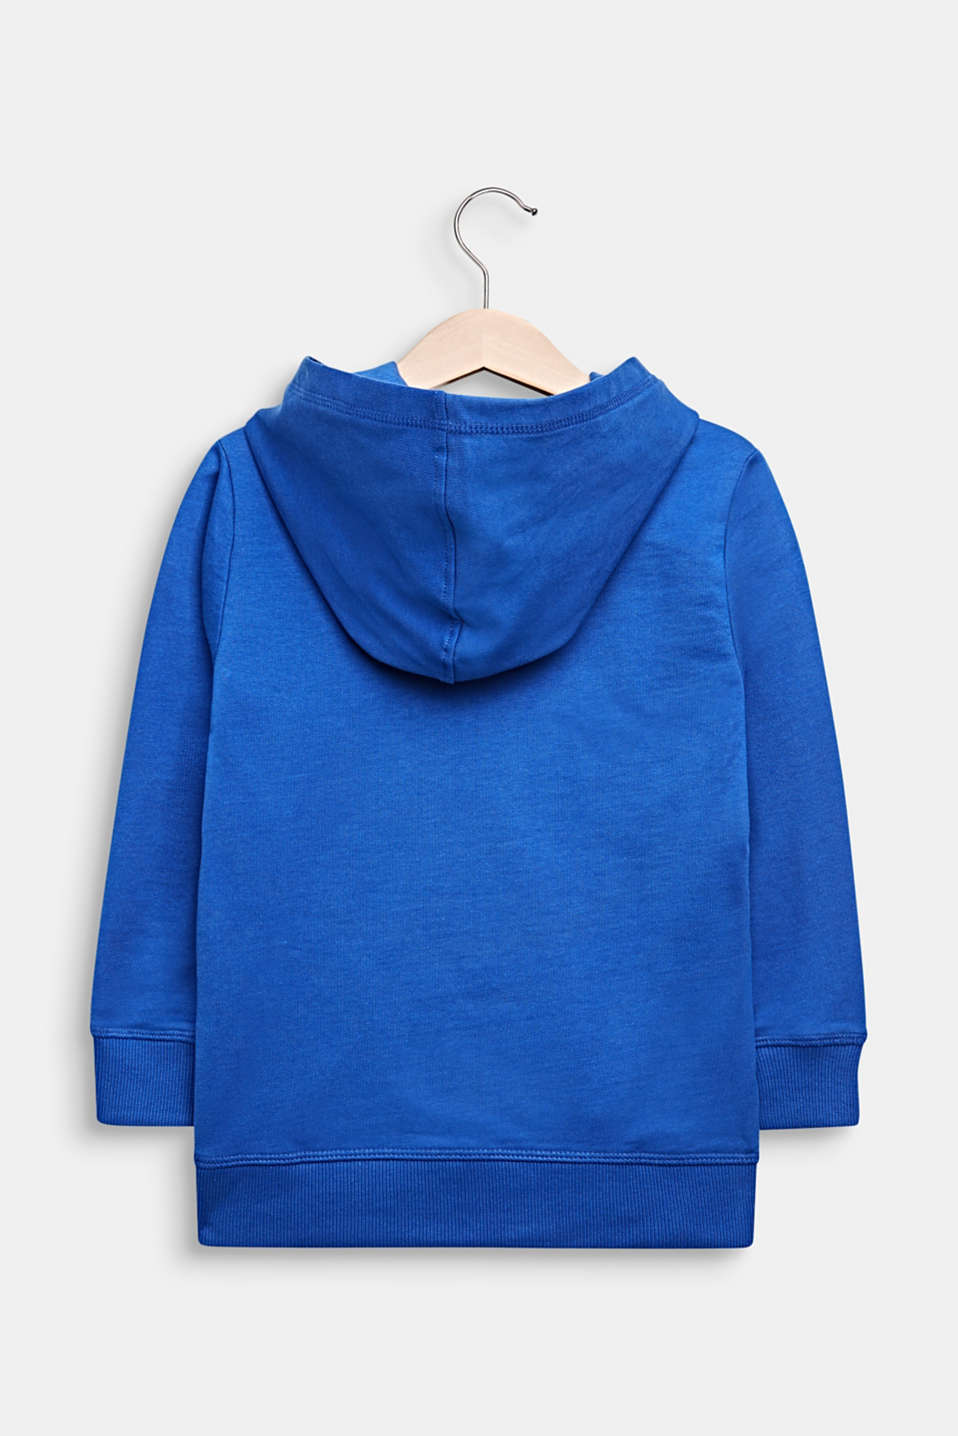 100% cotton sweatshirt fabric top with a print, INFINITY BLUE, detail image number 1